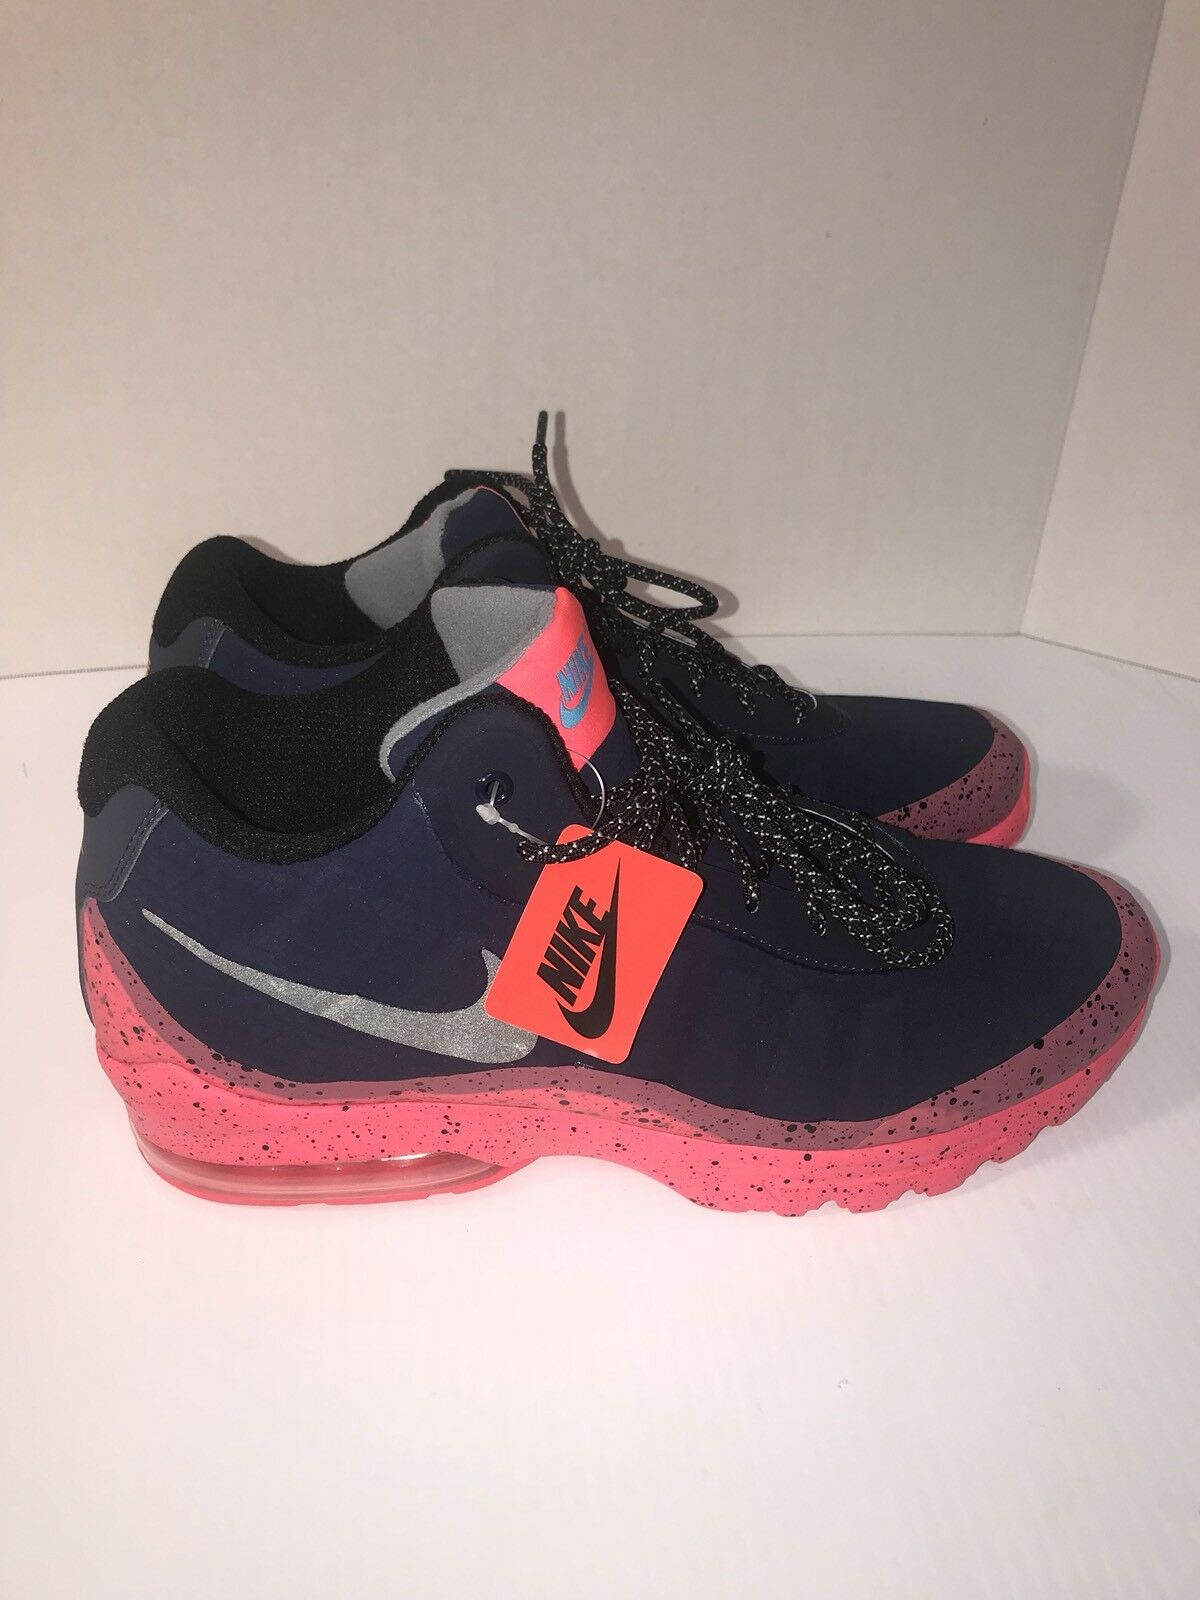 Men's Nike Air Max Invigor Mid Shoe 858654-401 OBSIDIAN/BLACK-SOLAR RED Sz 12